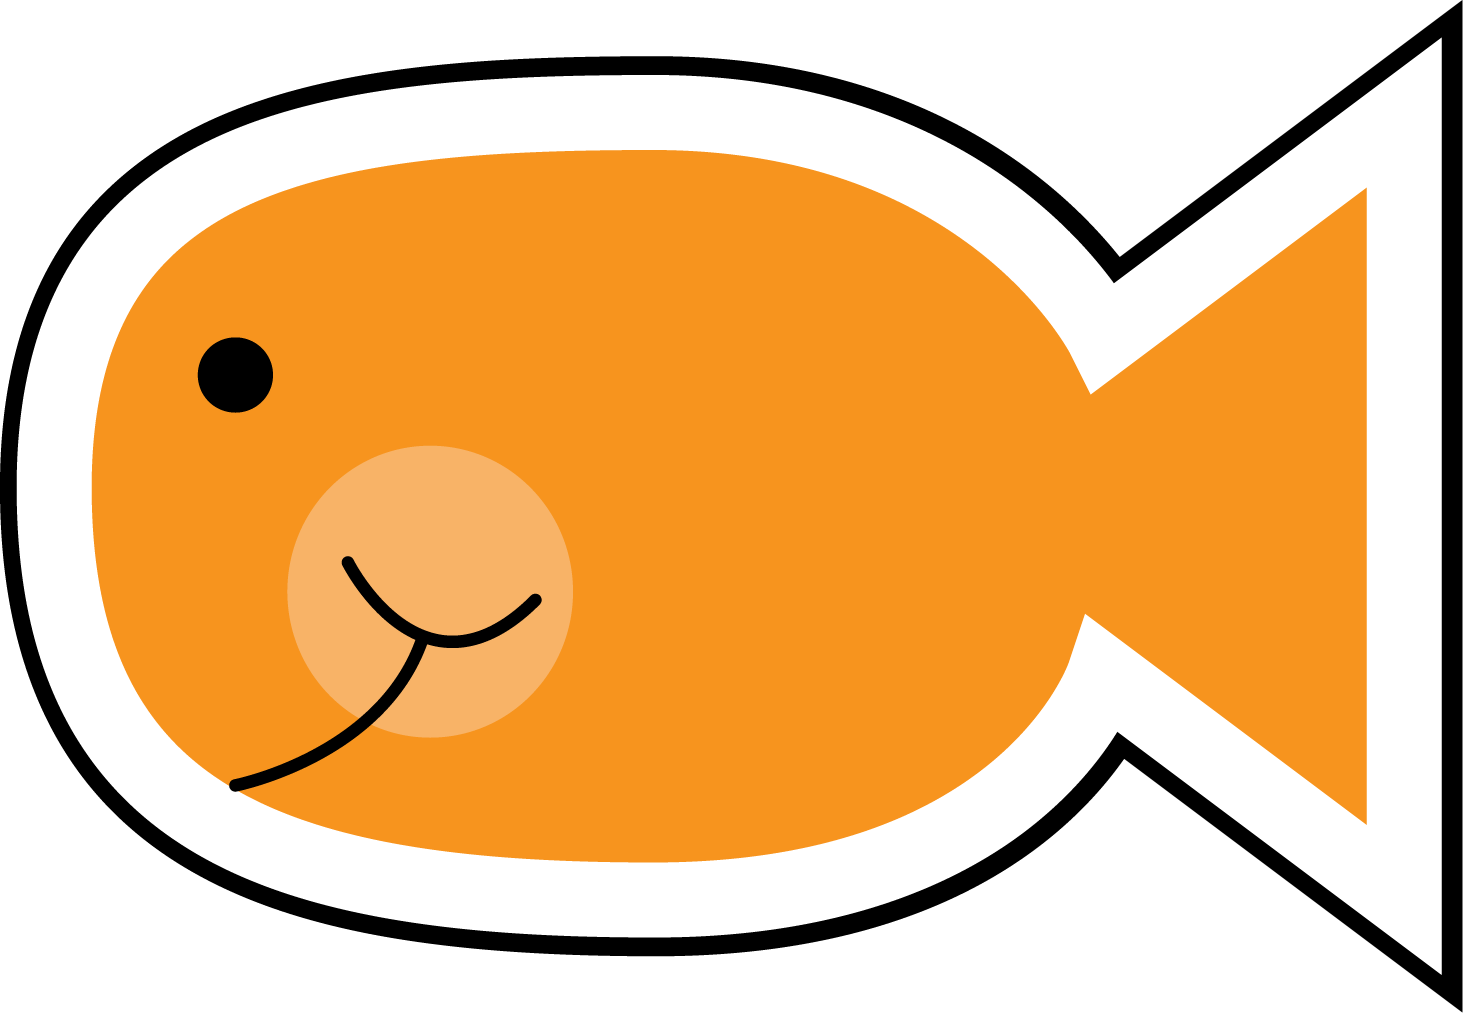 Goldfish clipart #7, Download drawings